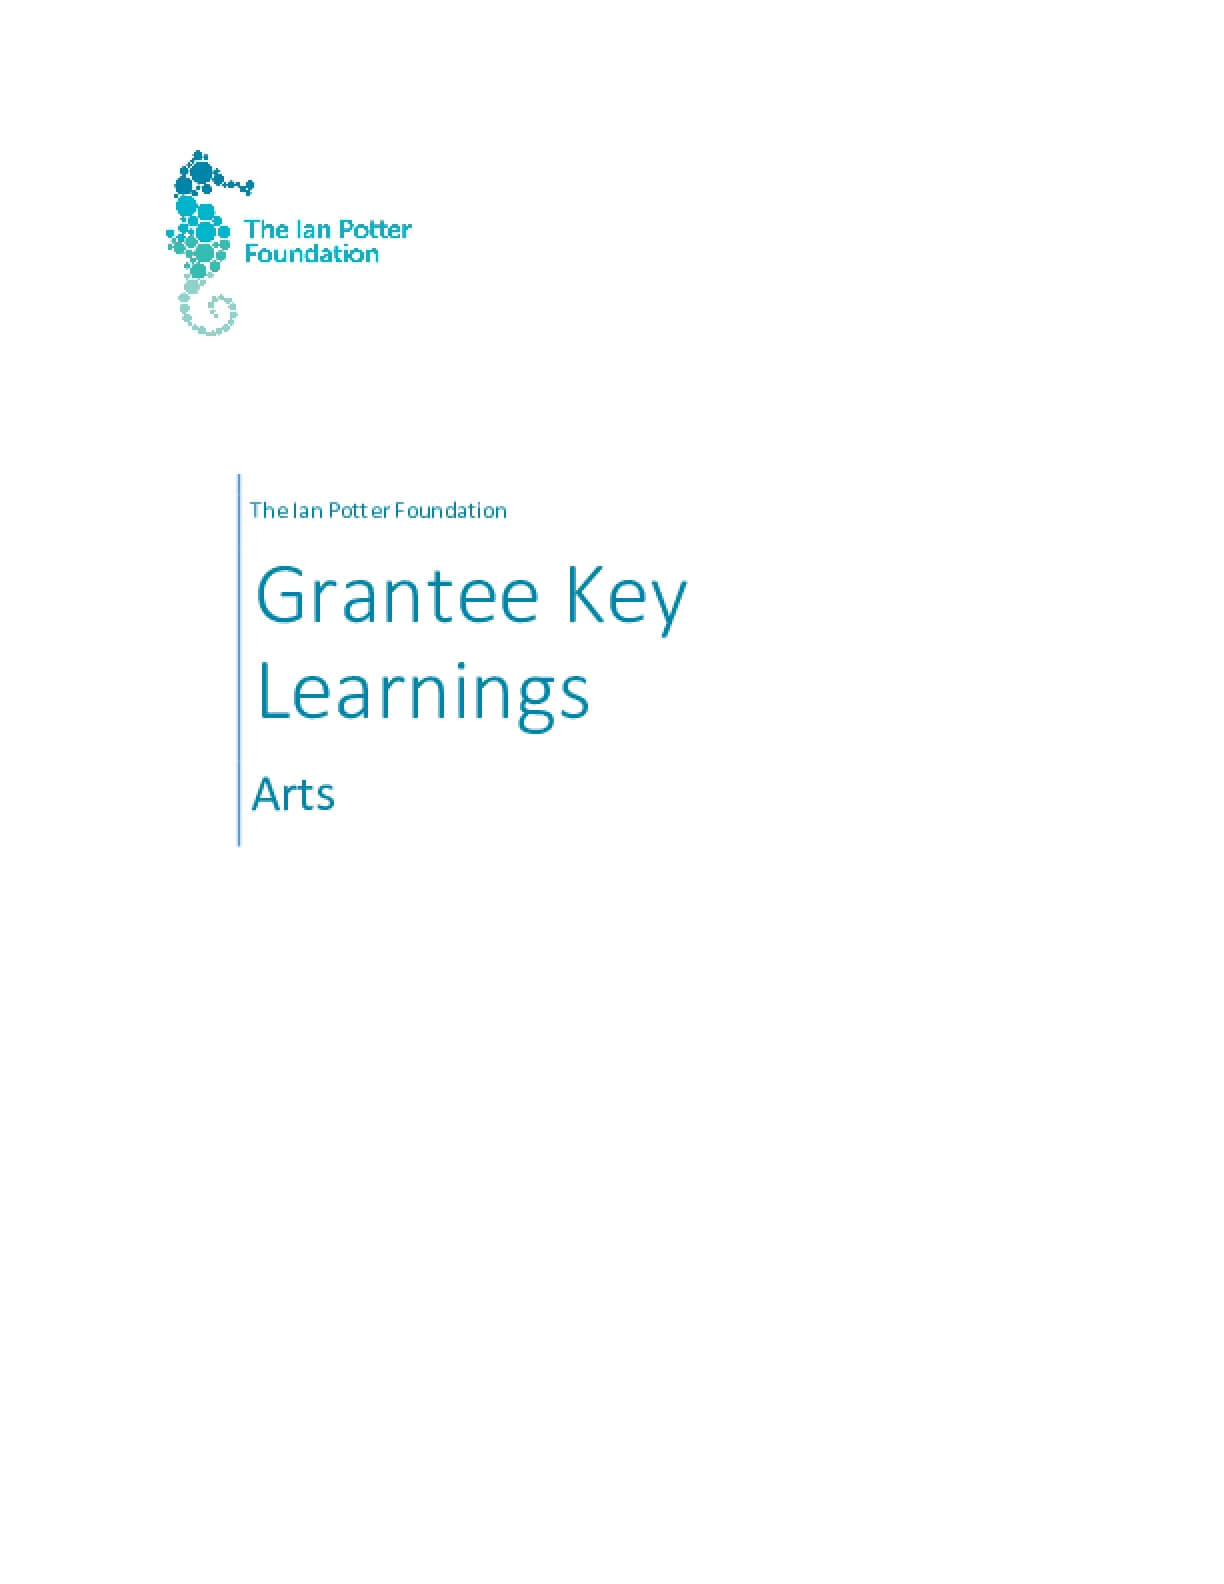 The Ian Potter Foundation Arts Grantee Learnings